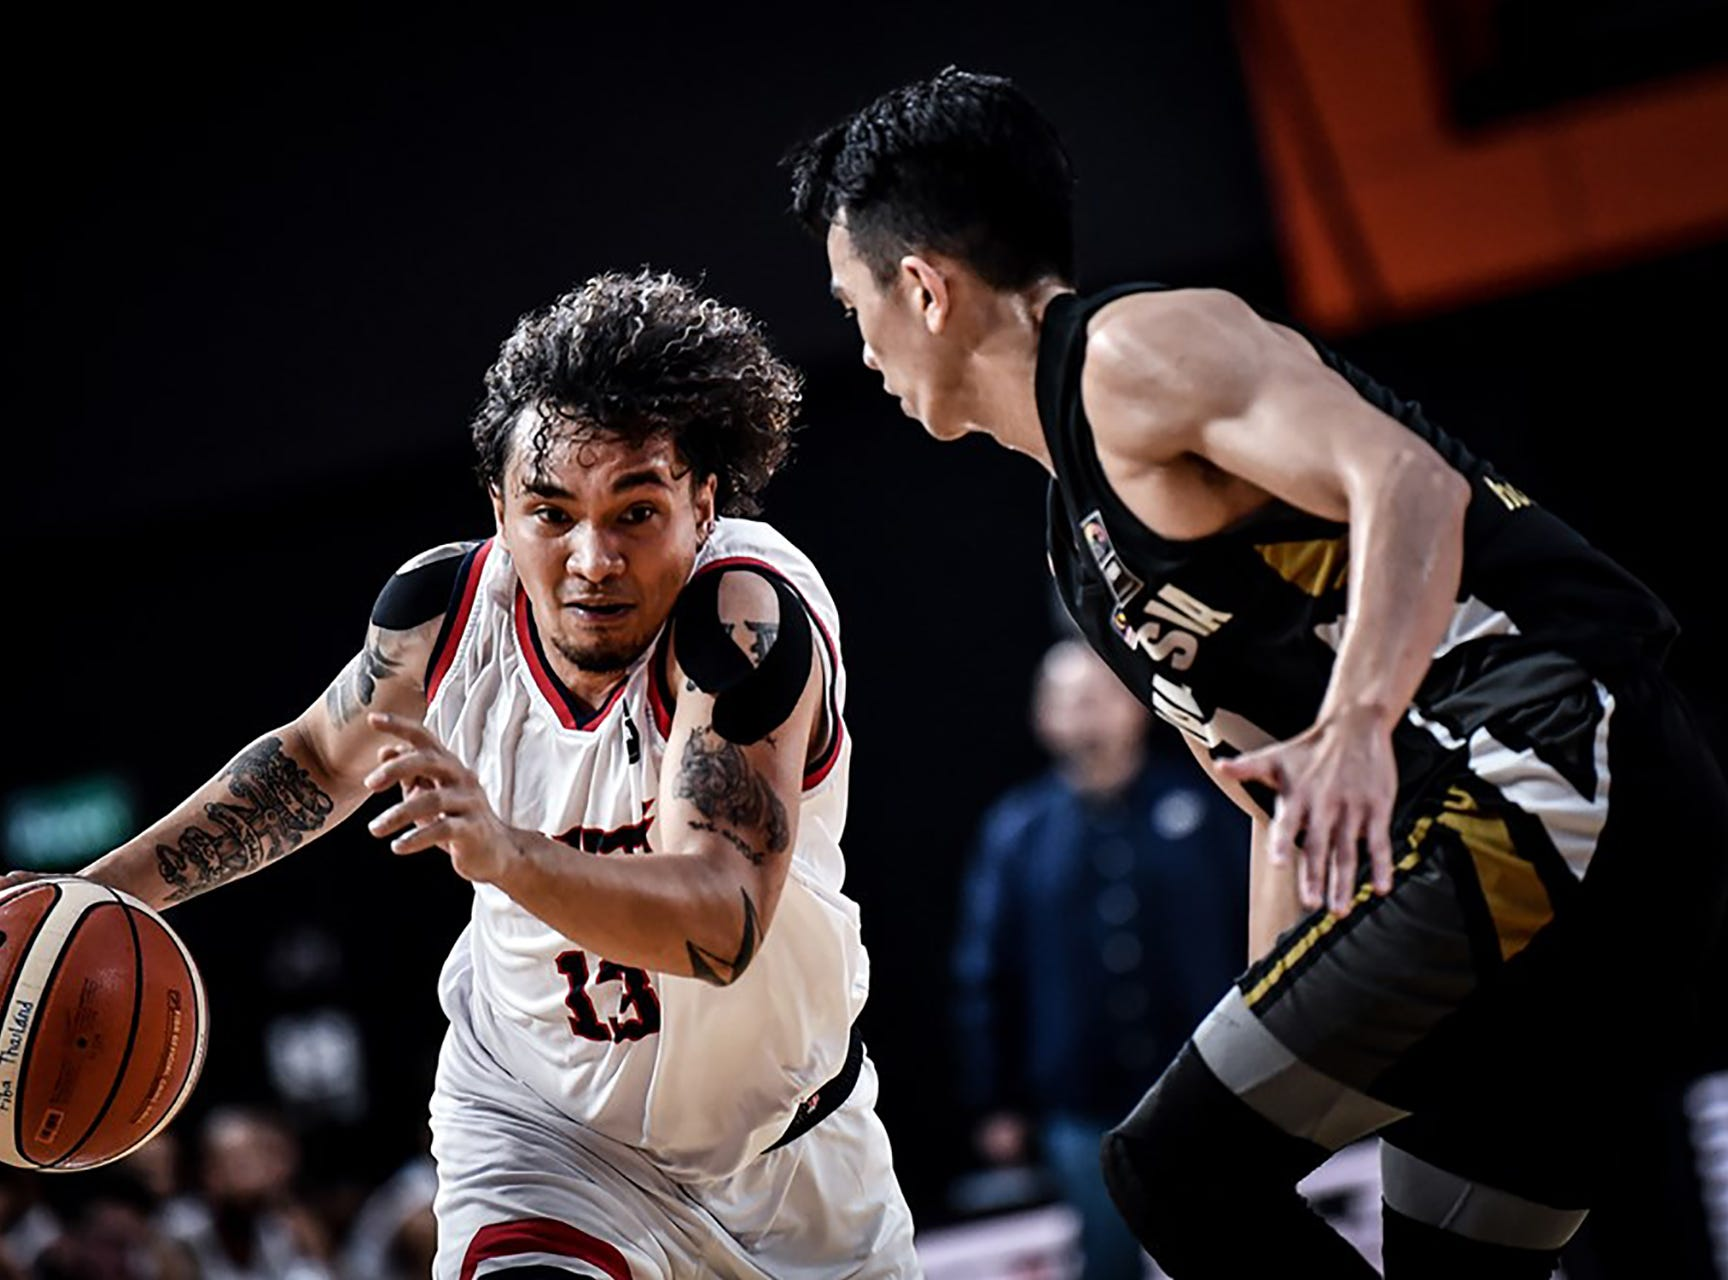 JP Cruz drives around a defender during his team's final game against Malaysia. Cruz missed just one shot in six attempts, made three of four treys, and hit all four of his free throws for 16 points. Guam won 101-78 to complete a 6-0 sweep of all teams in  Asia's Eastern Division and move on to the qualifier round of the FIBA Asia Cup 2021.